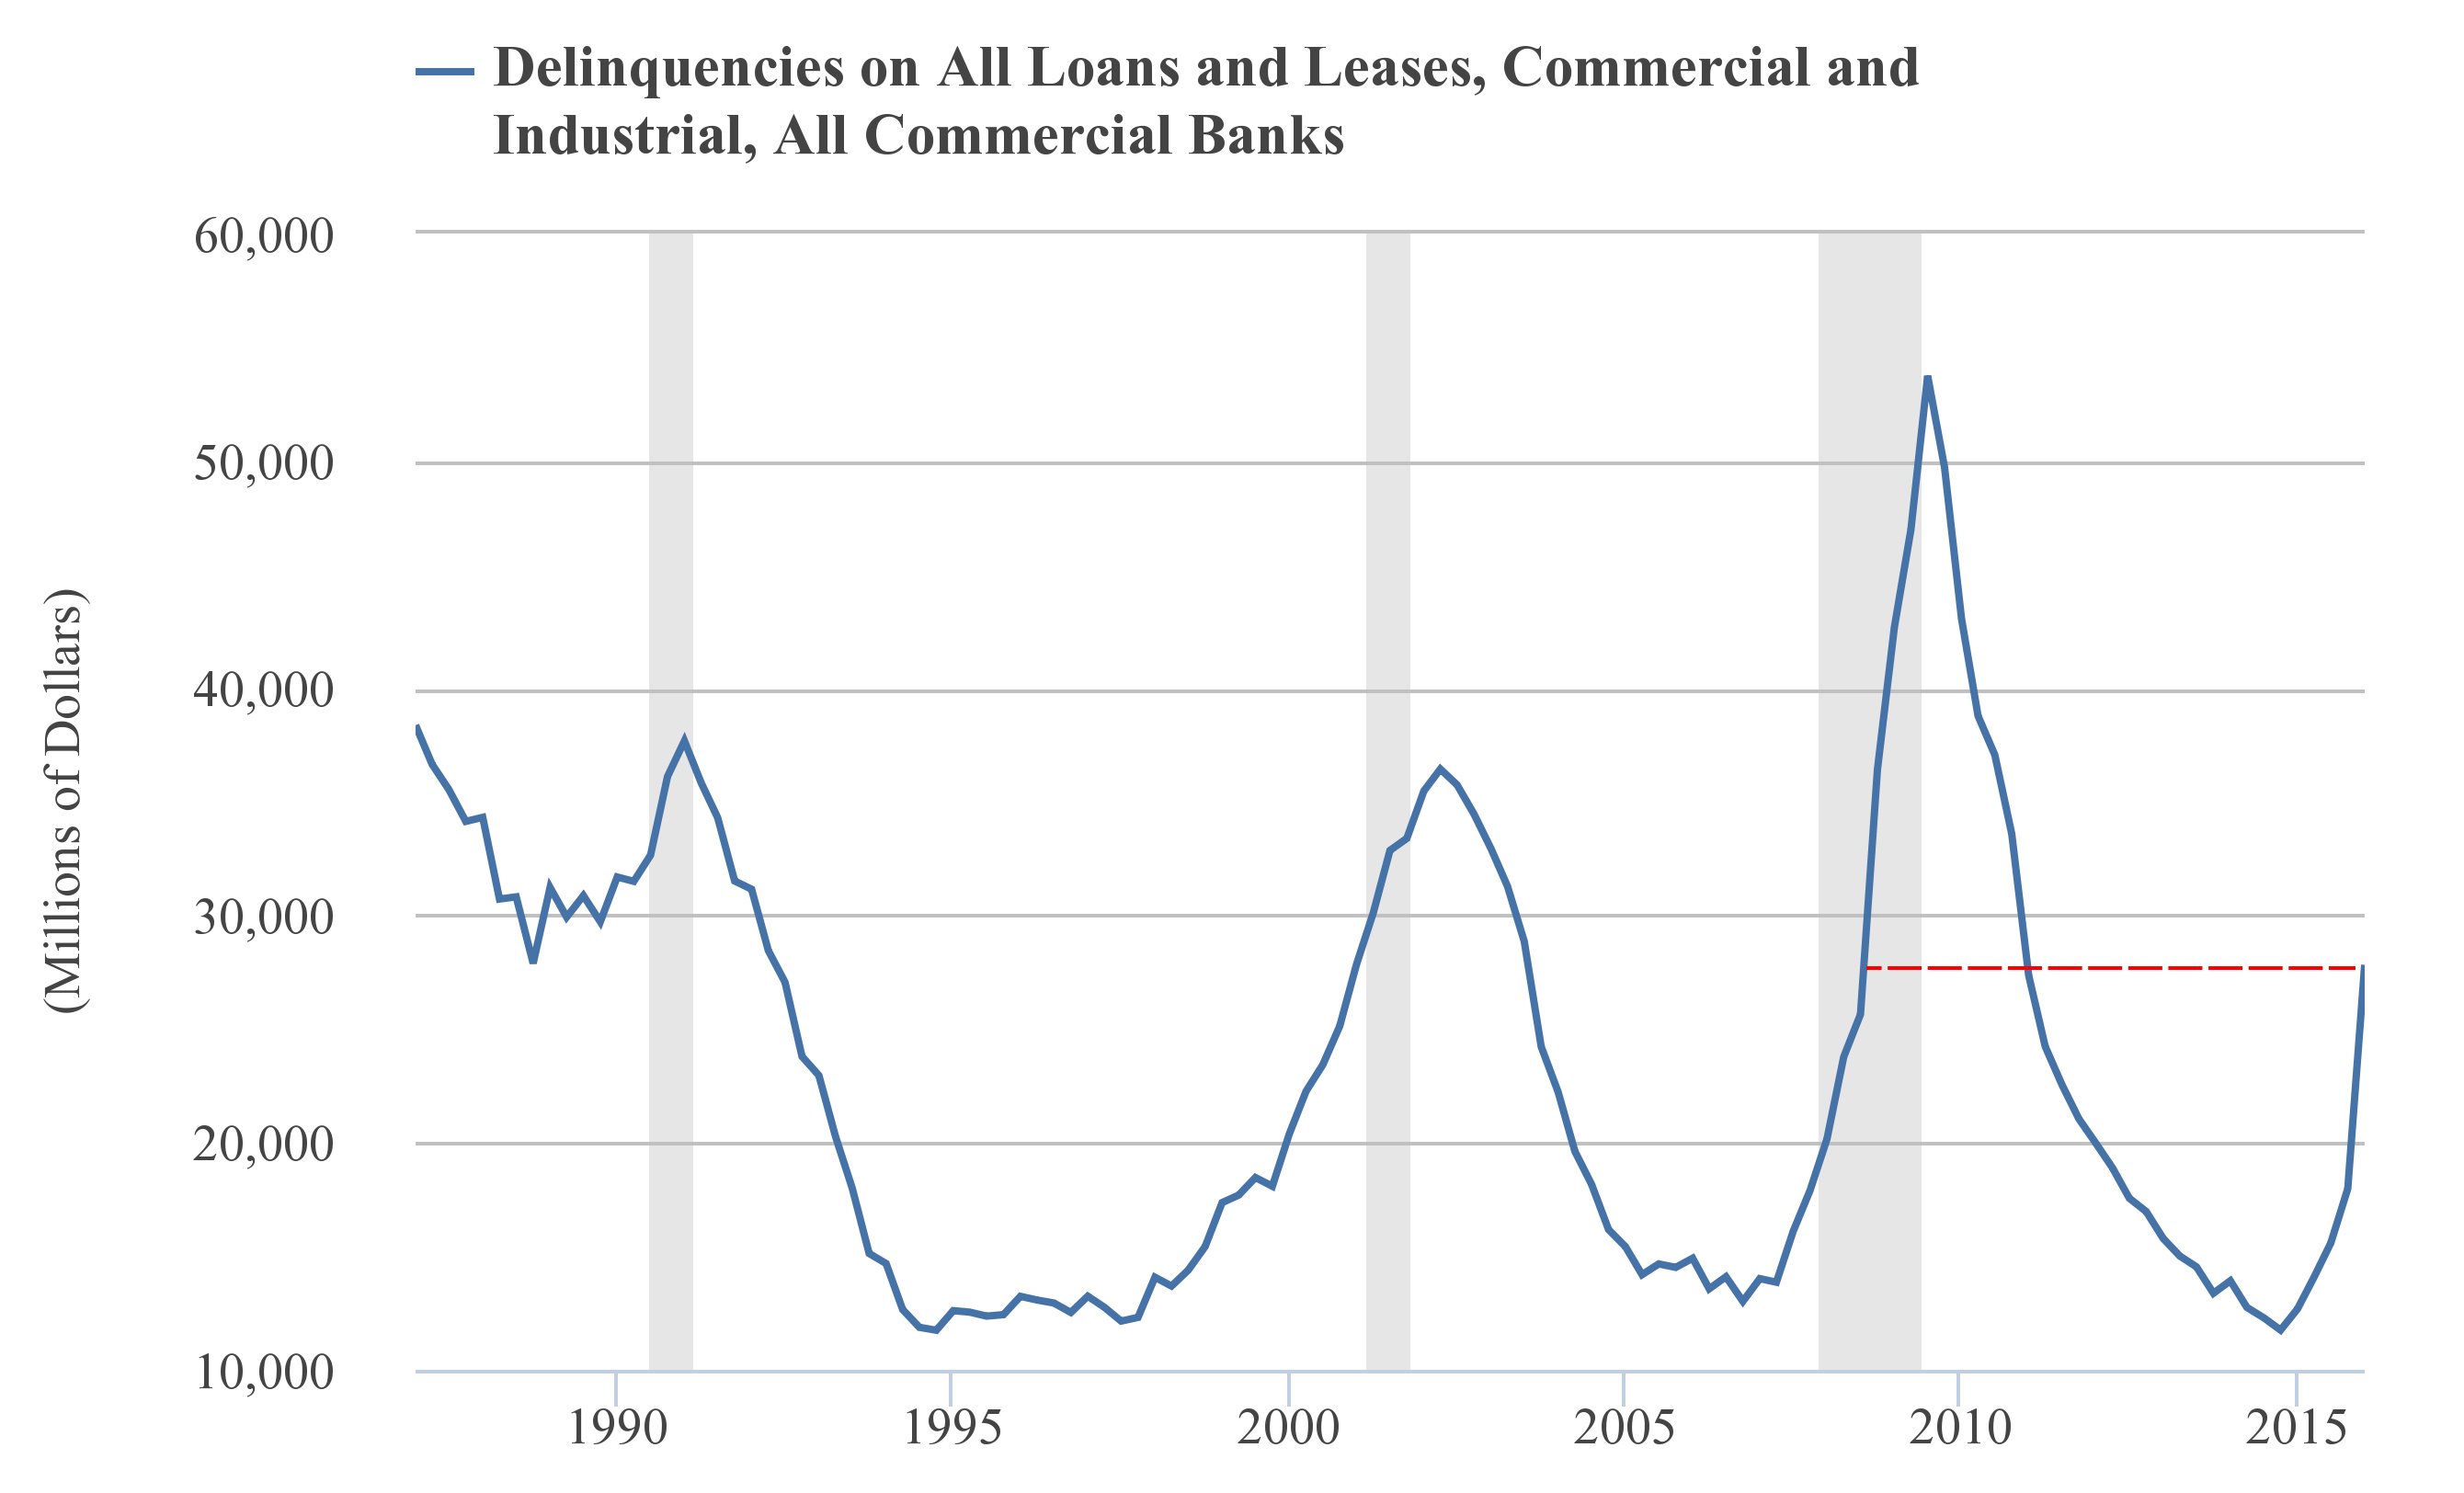 The dollar amount of delinquencies is already skyhigh